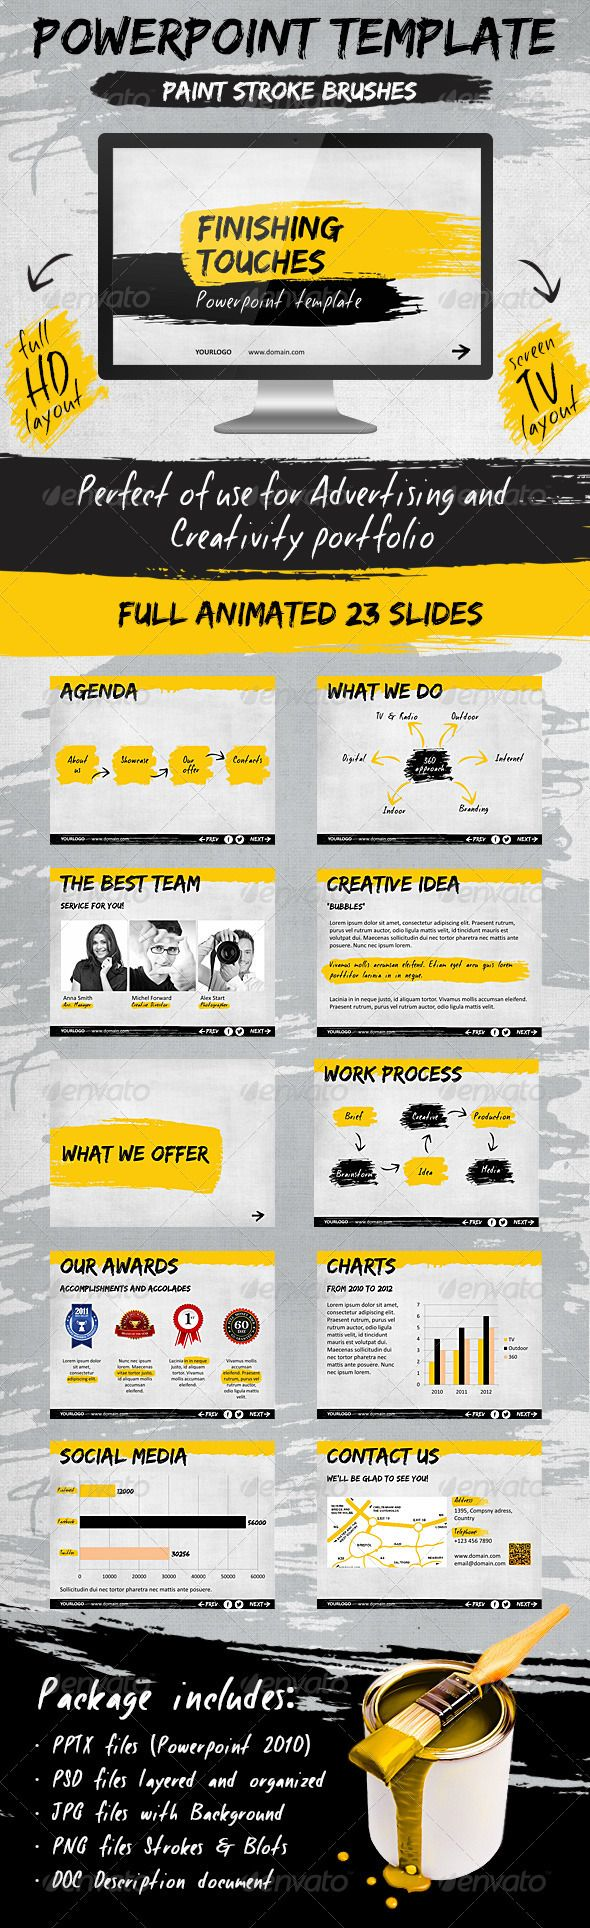 Presentation Templates - Finishing Touches Template | GraphicRiver, color pattern, design, presentation,